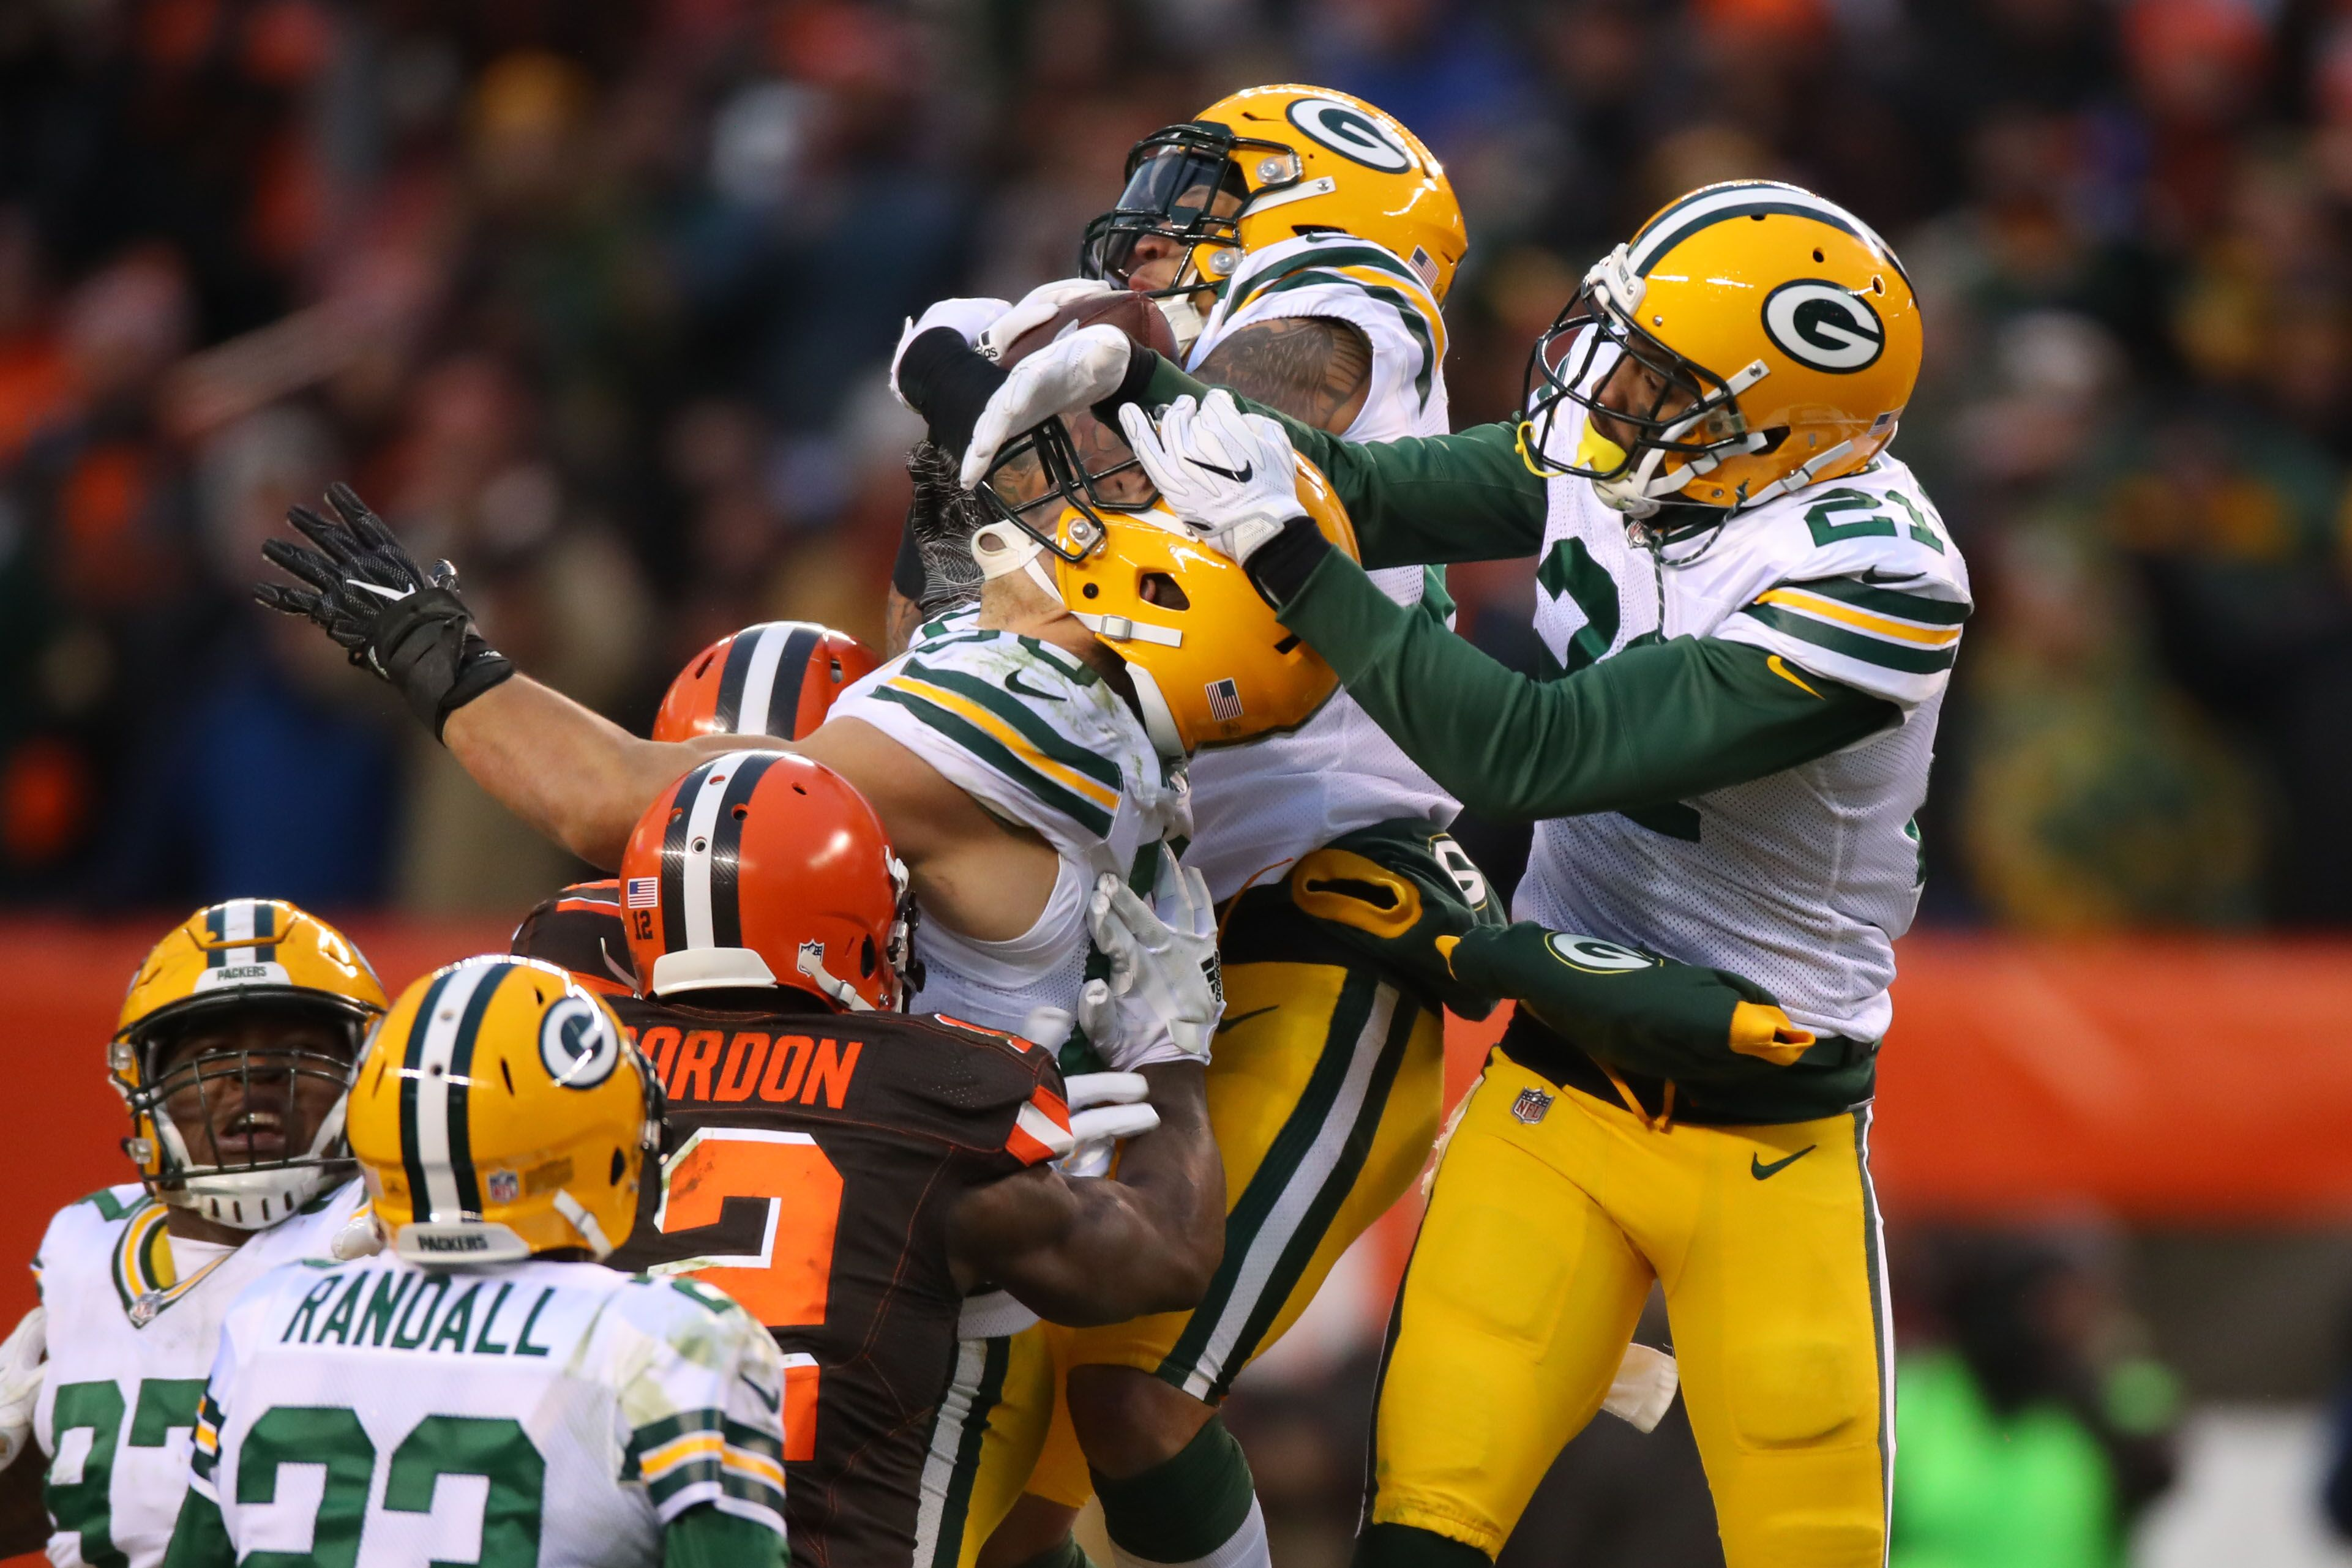 889716672-green-bay-packers-v-cleveland-browns.jpg